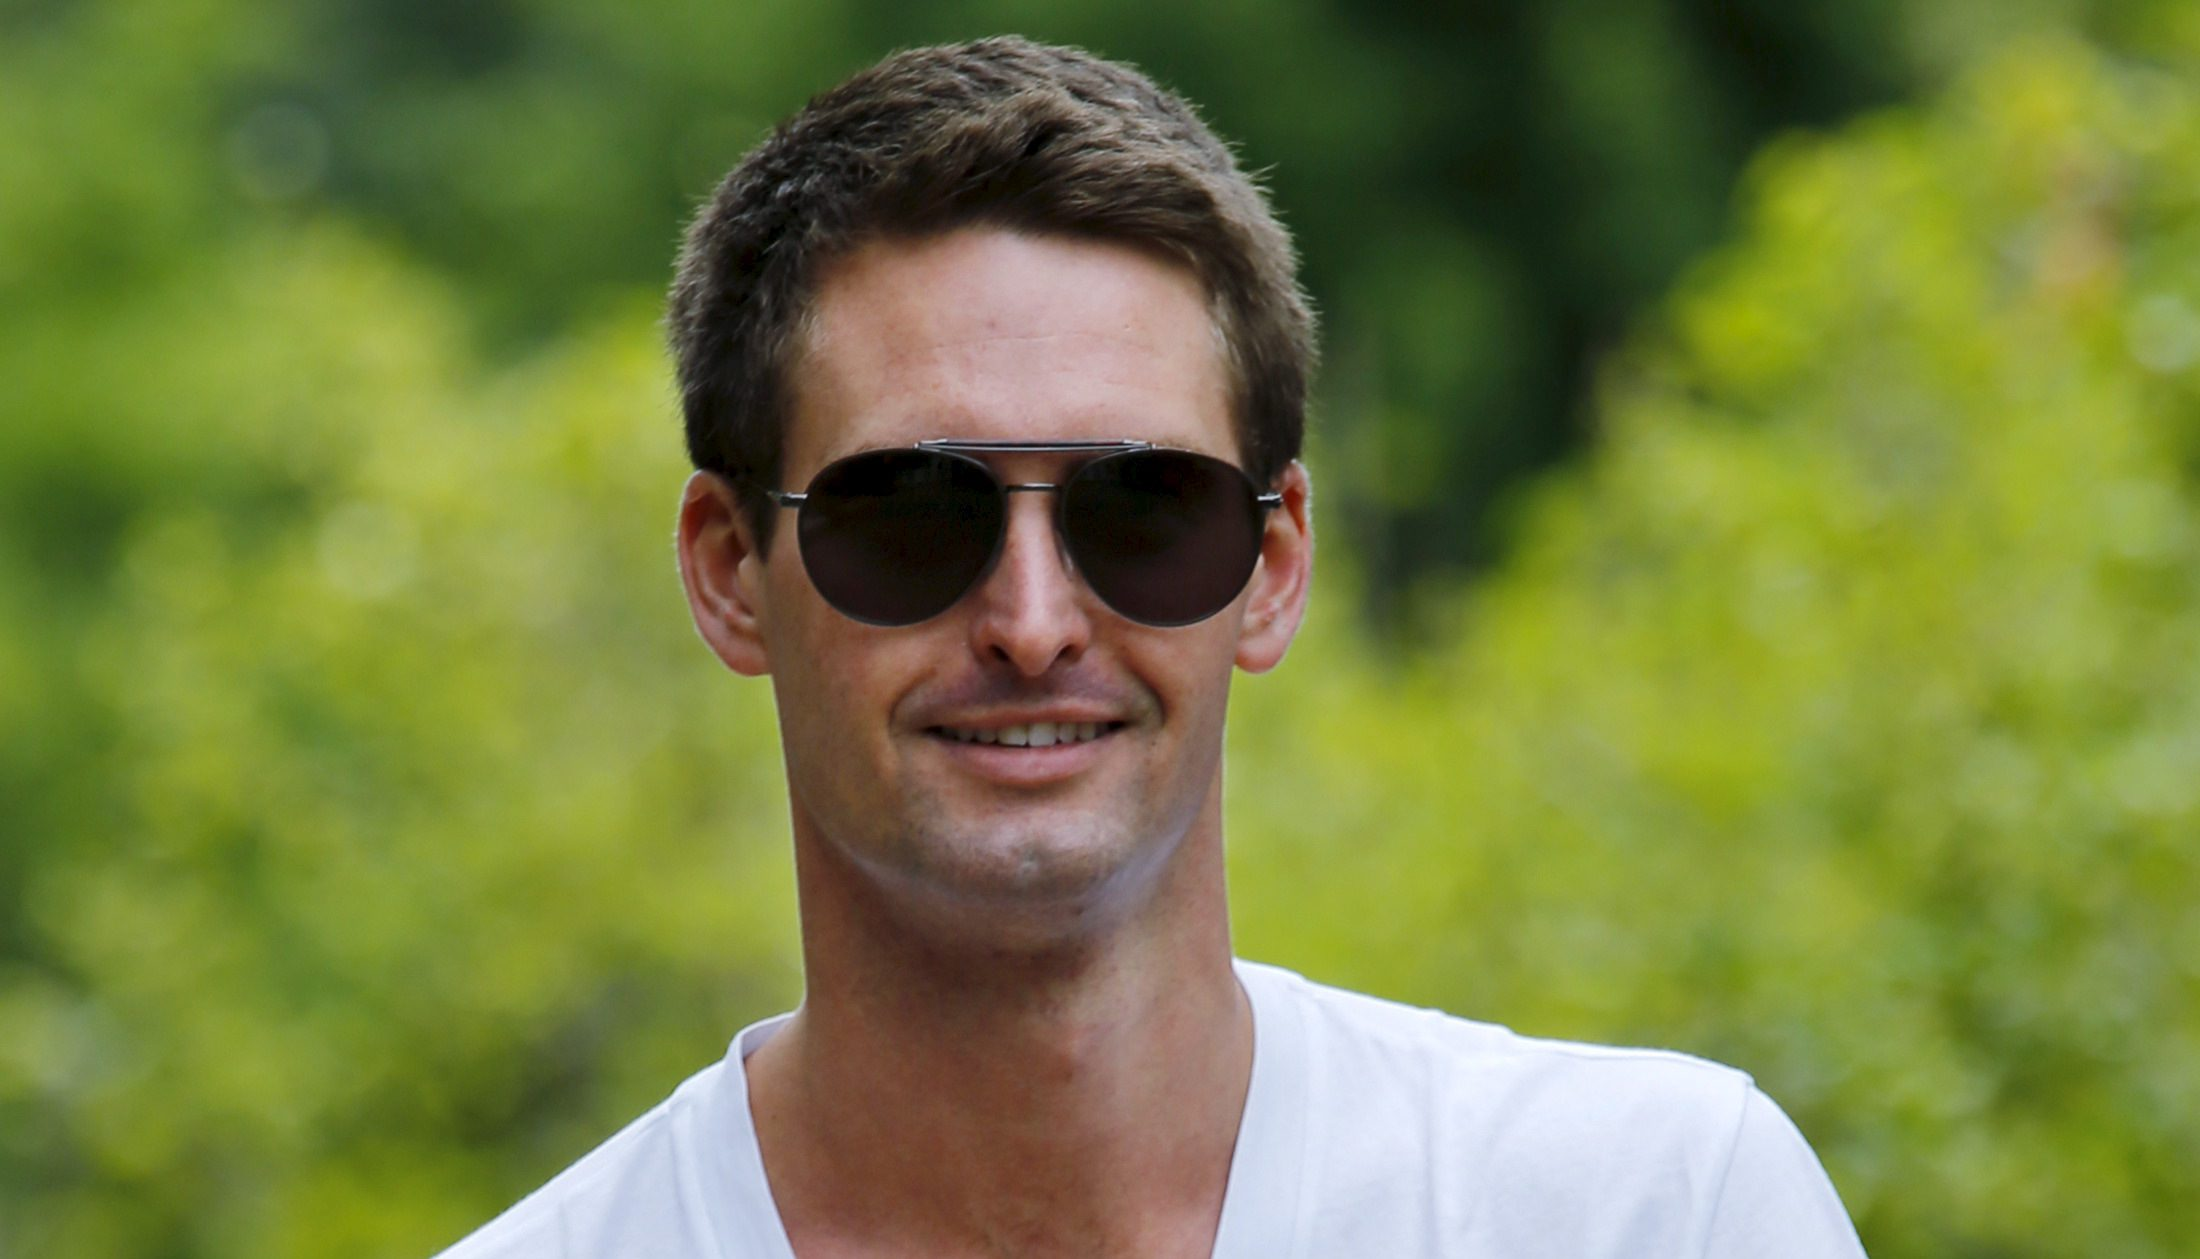 Snapchat CEO Evan Spiegel attends the first day of the annual Allen and Co. media conference in Sun Valley, Idaho, July 8, 2015. REUTERS/Mike Blake - RTX1JMJQ